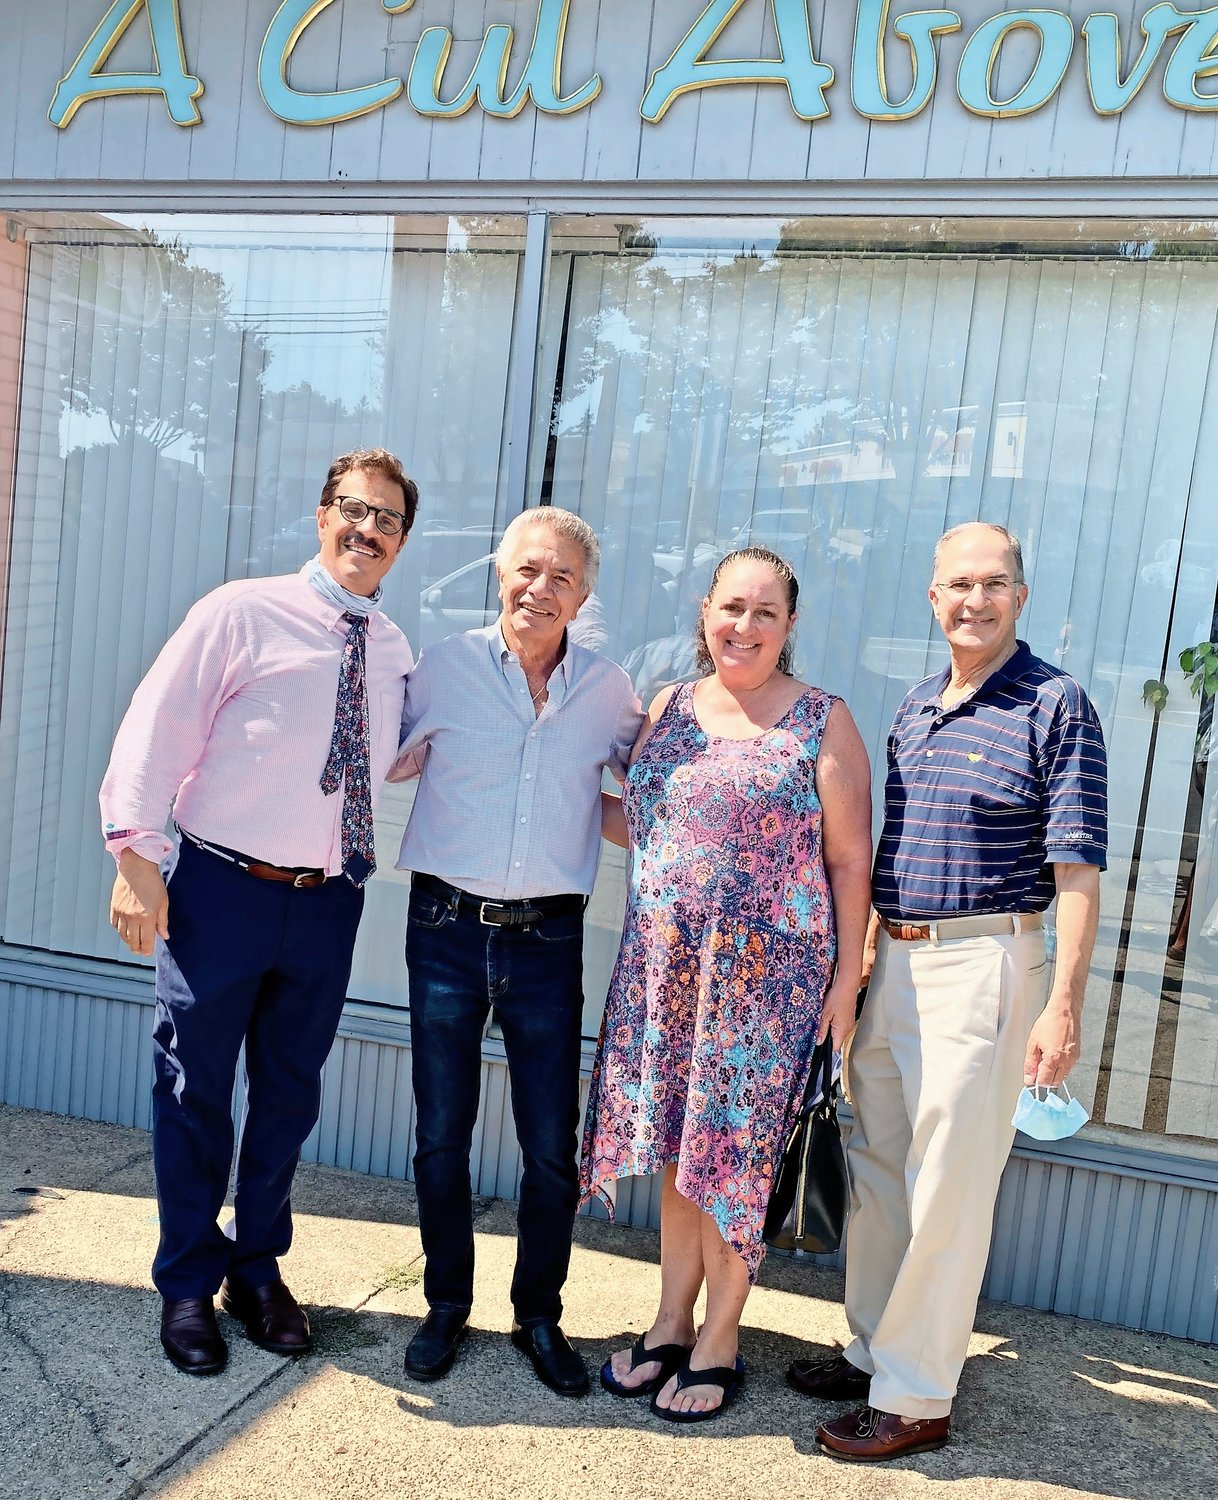 Town Councilman Thomas Muscarella, Franklin Square Chamber of Commerce President Lisa DelliPizzi and Nassau County Legislator Vincent Muscarella congratulated John Gigante, second from left, on his retirement.